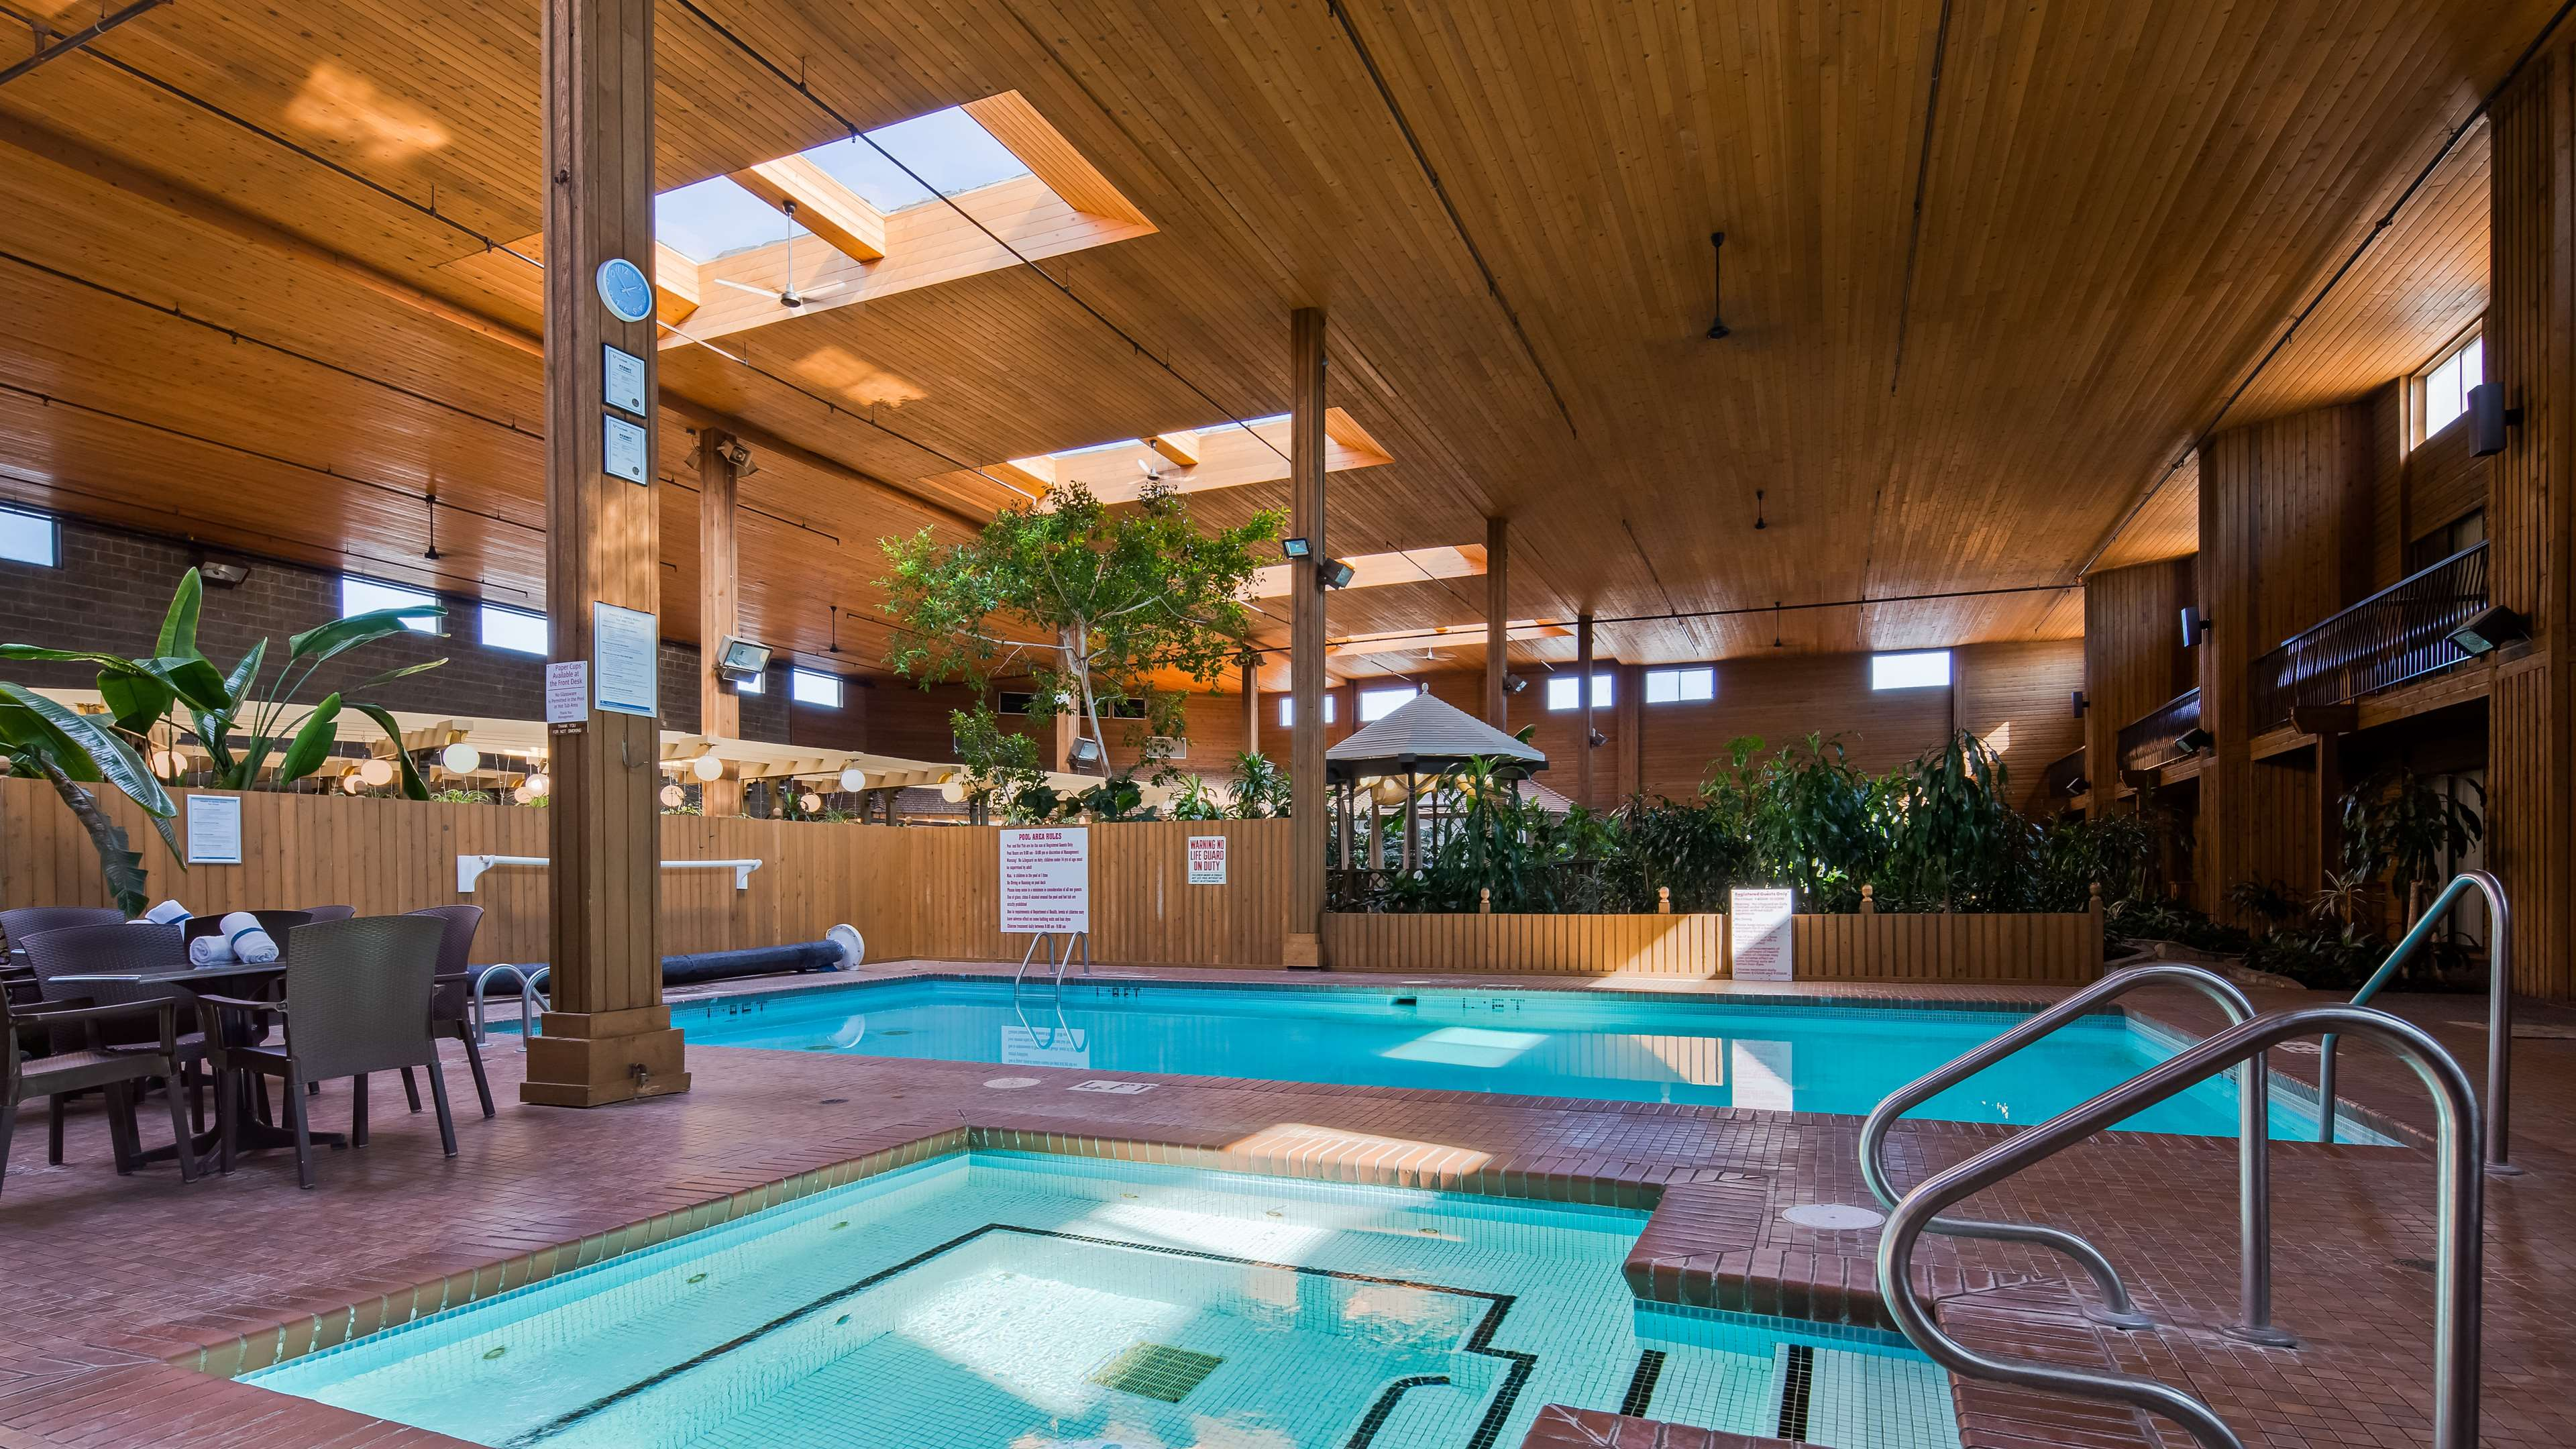 Surestay Hotel By Best Western Chilliwack in Chilliwack: Indoor Hot Tub and Pool